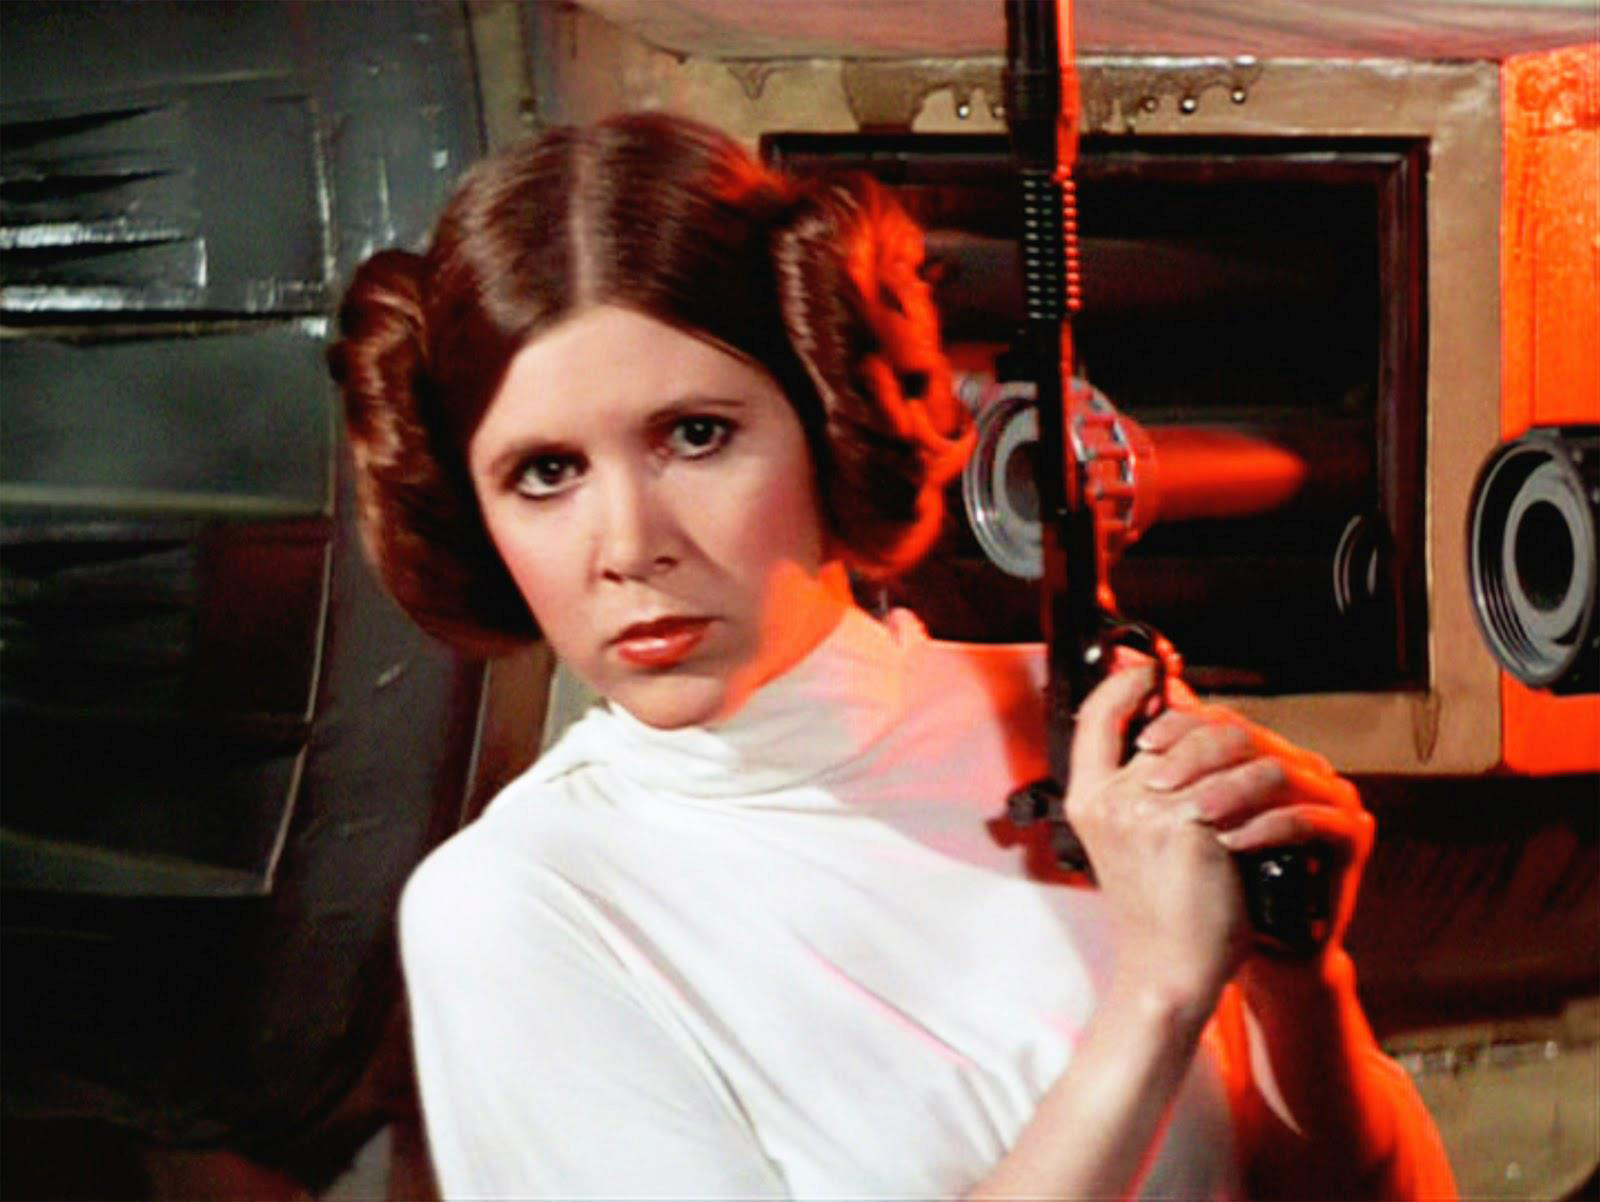 Actor, author, humourist, Carrie Fisher will be tied to Star Wars' iconic Princess Leia. (still from the 1977 original Star Wars film)